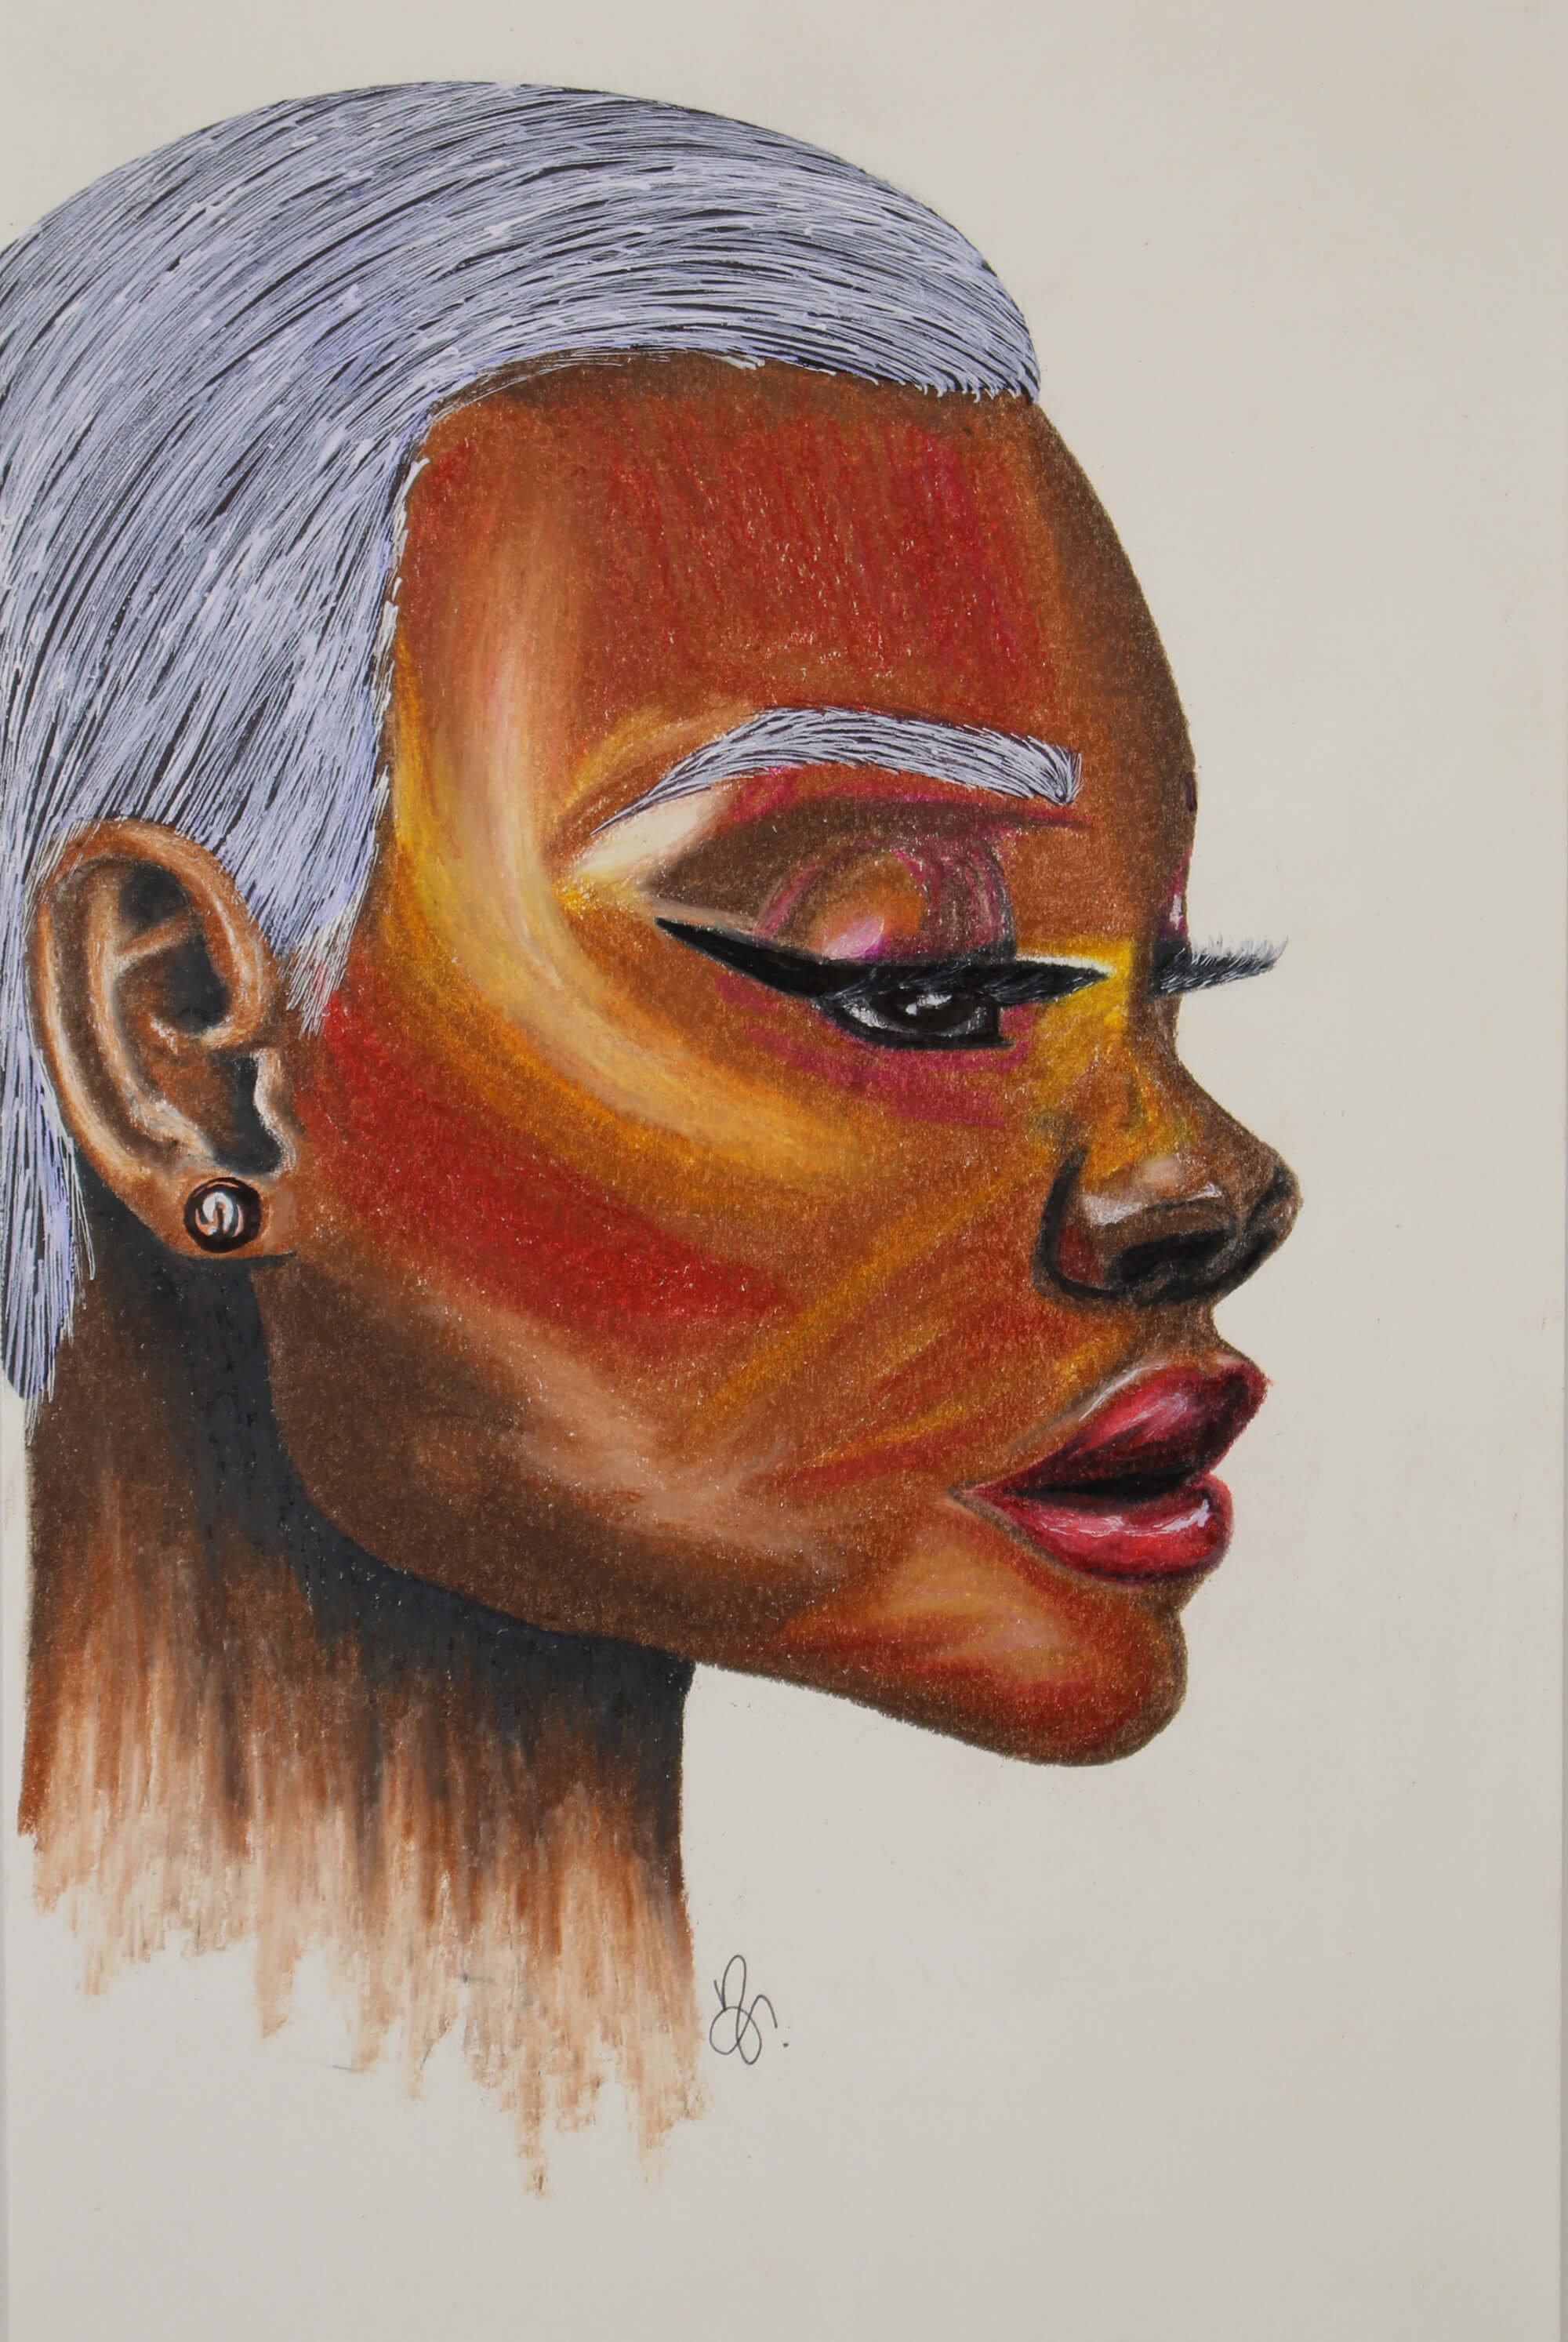 Prismacolor drawing of black woman head with white hair by Nichole Ortiz